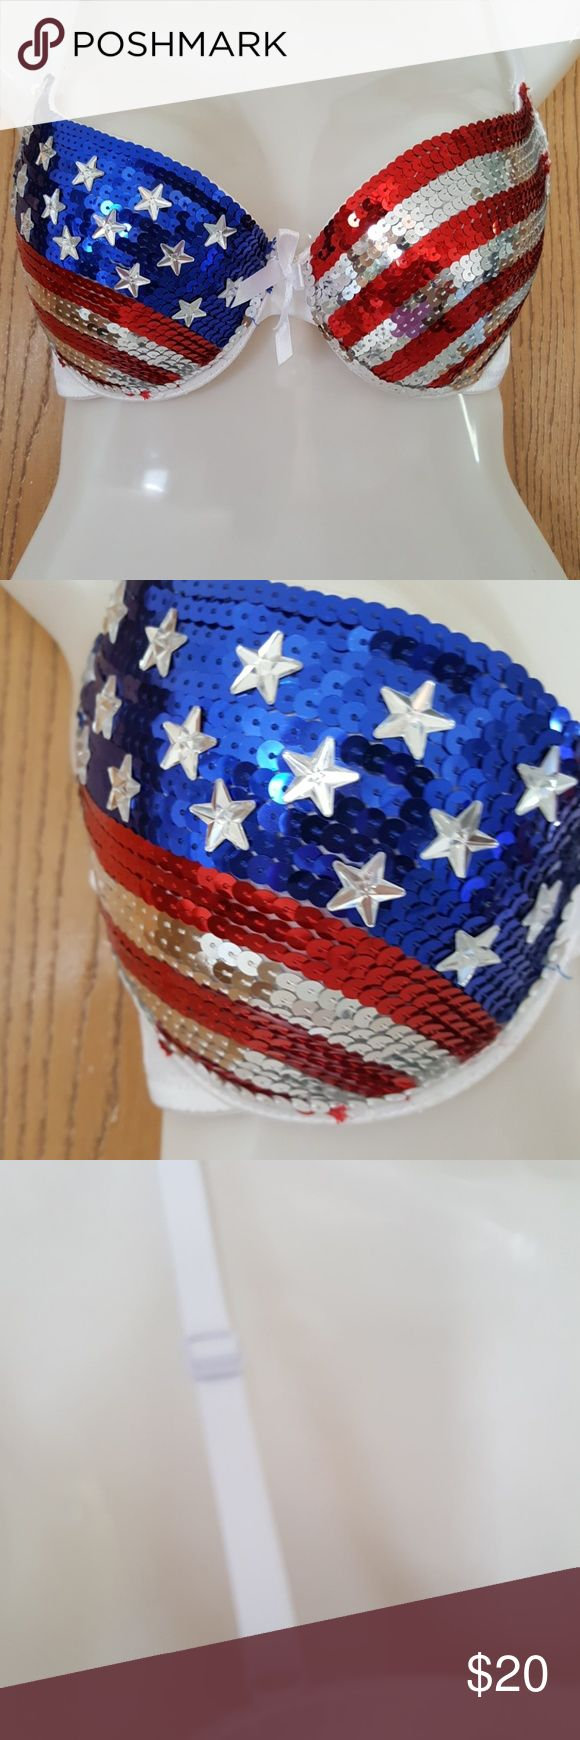 Sequins Beautiful Sequin American Flag Bra. These sequins were handstitched on.Adjustable straps.  Small flaw- easy fix see last pic-price affected. Intimates & Sleepwear Bras